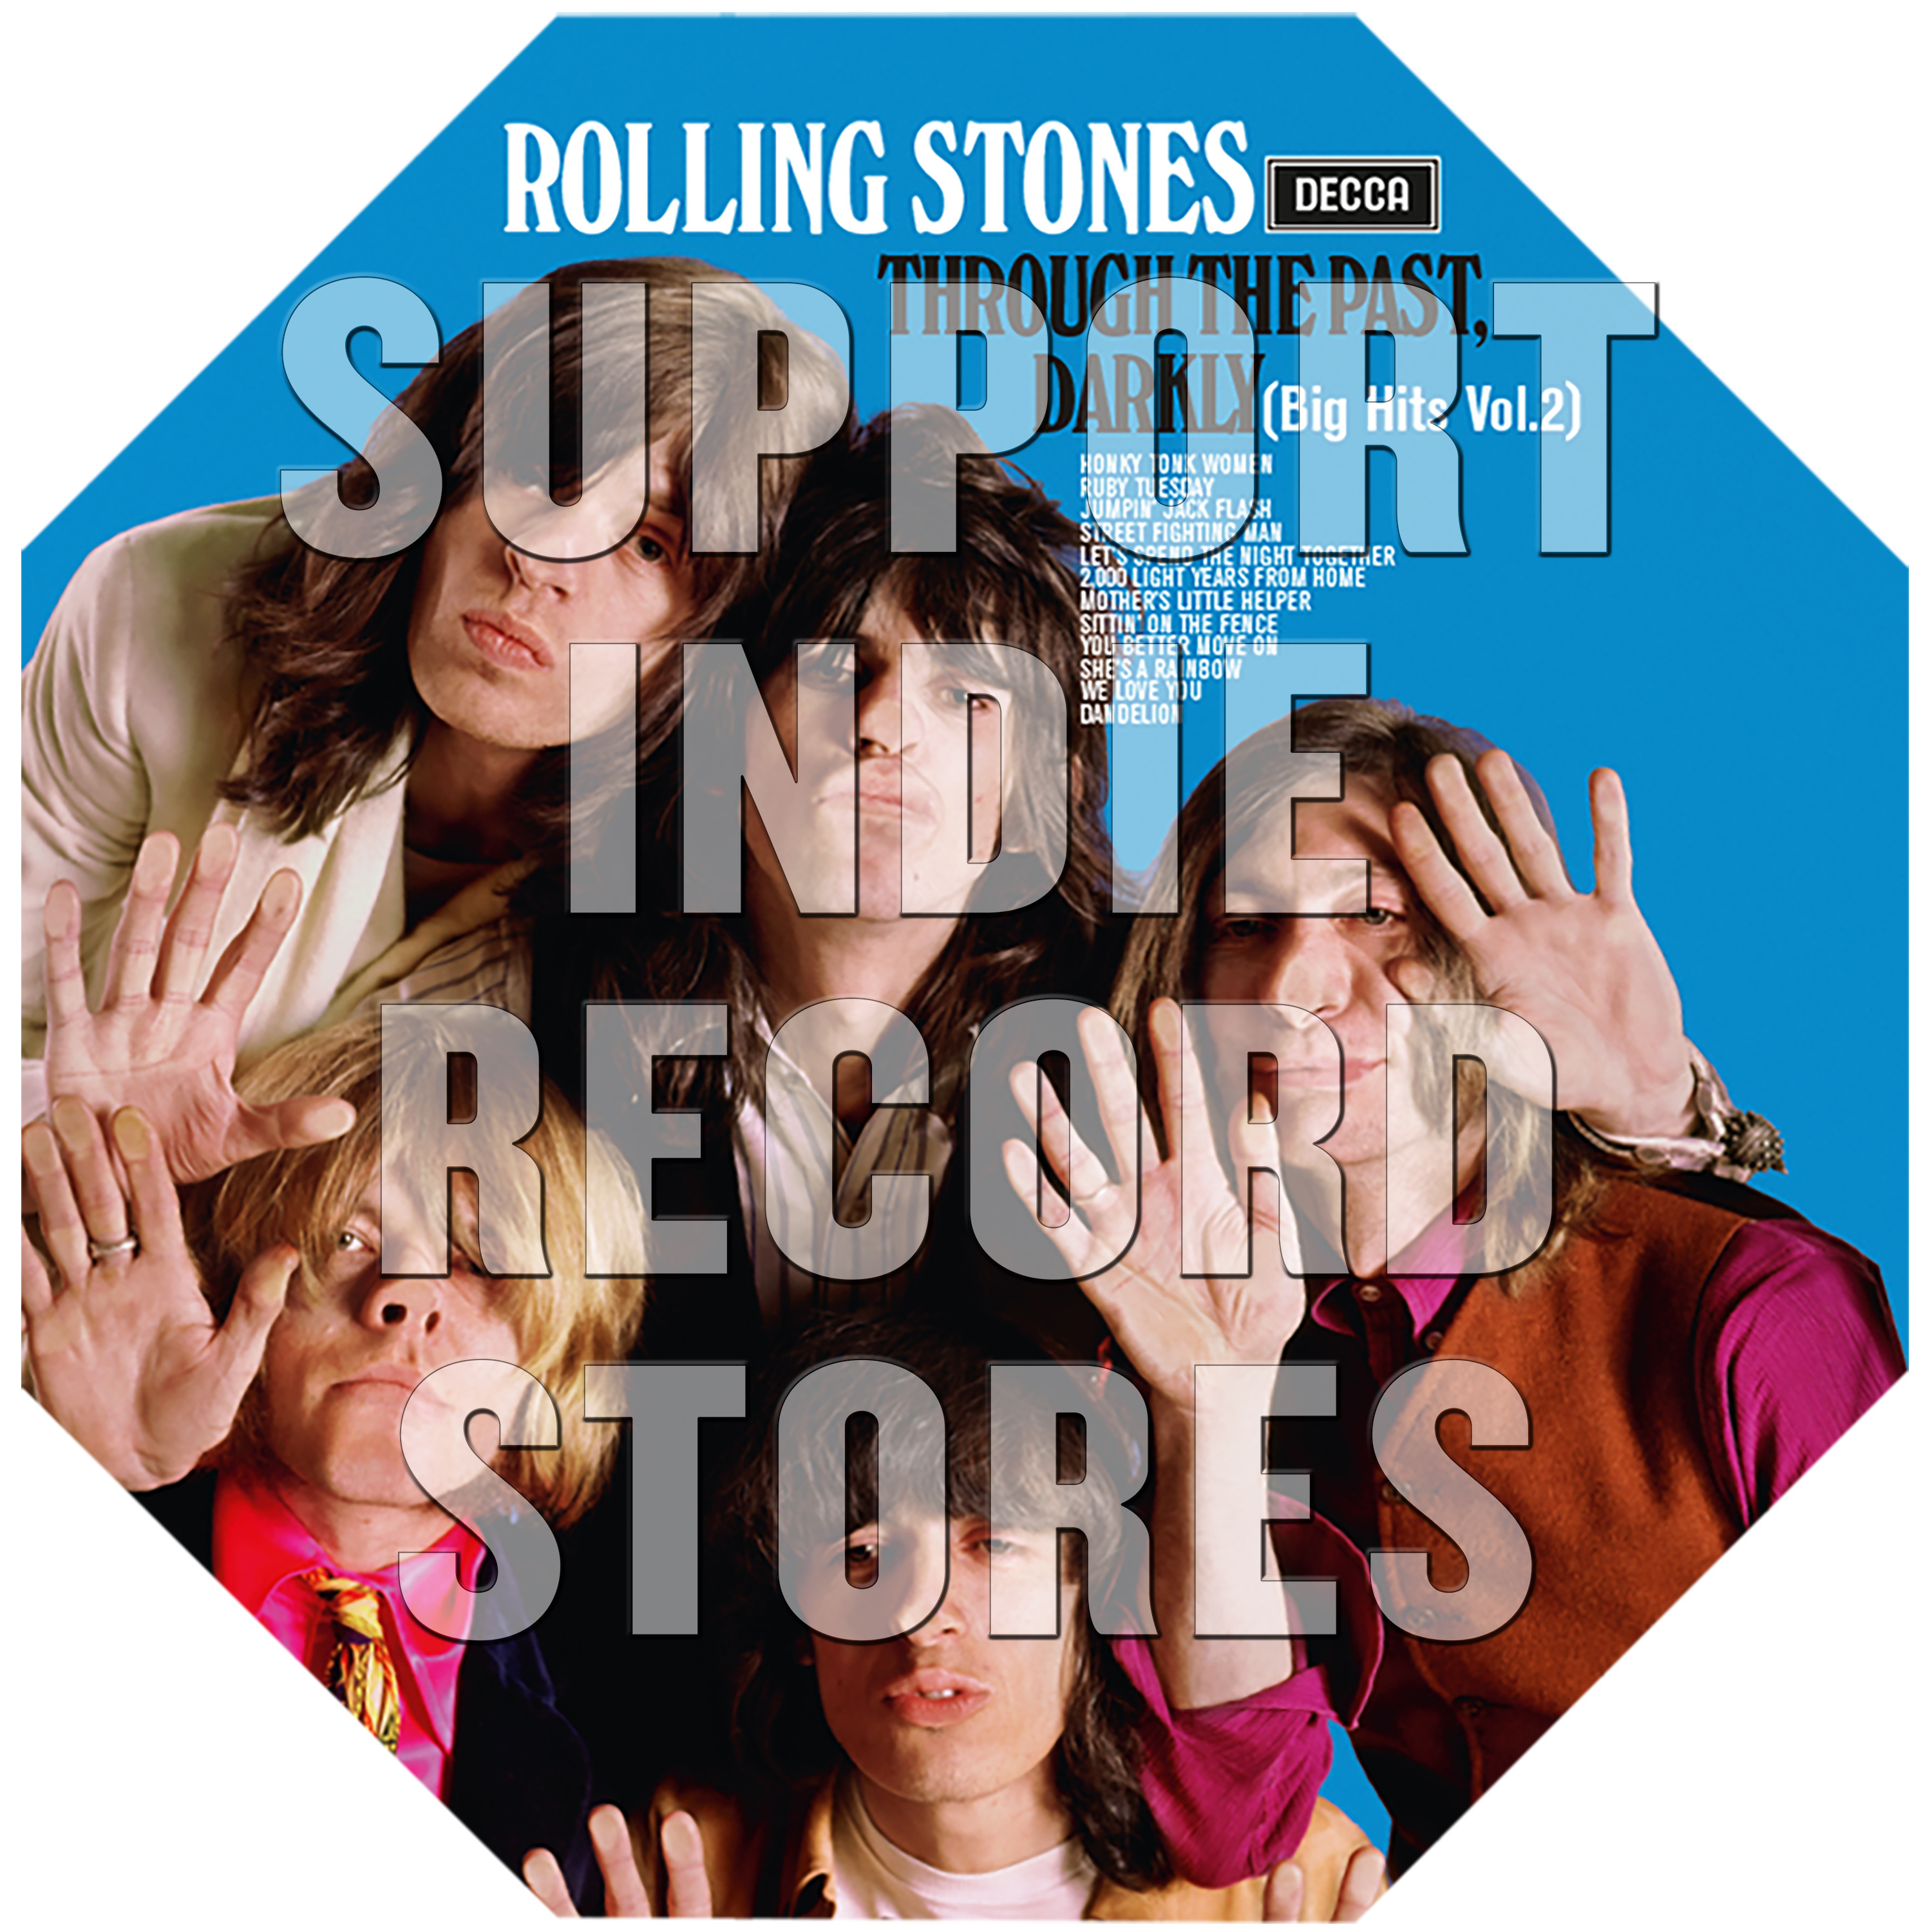 The Rolling Stones - Through The Past Darkly  [RSD 2019]